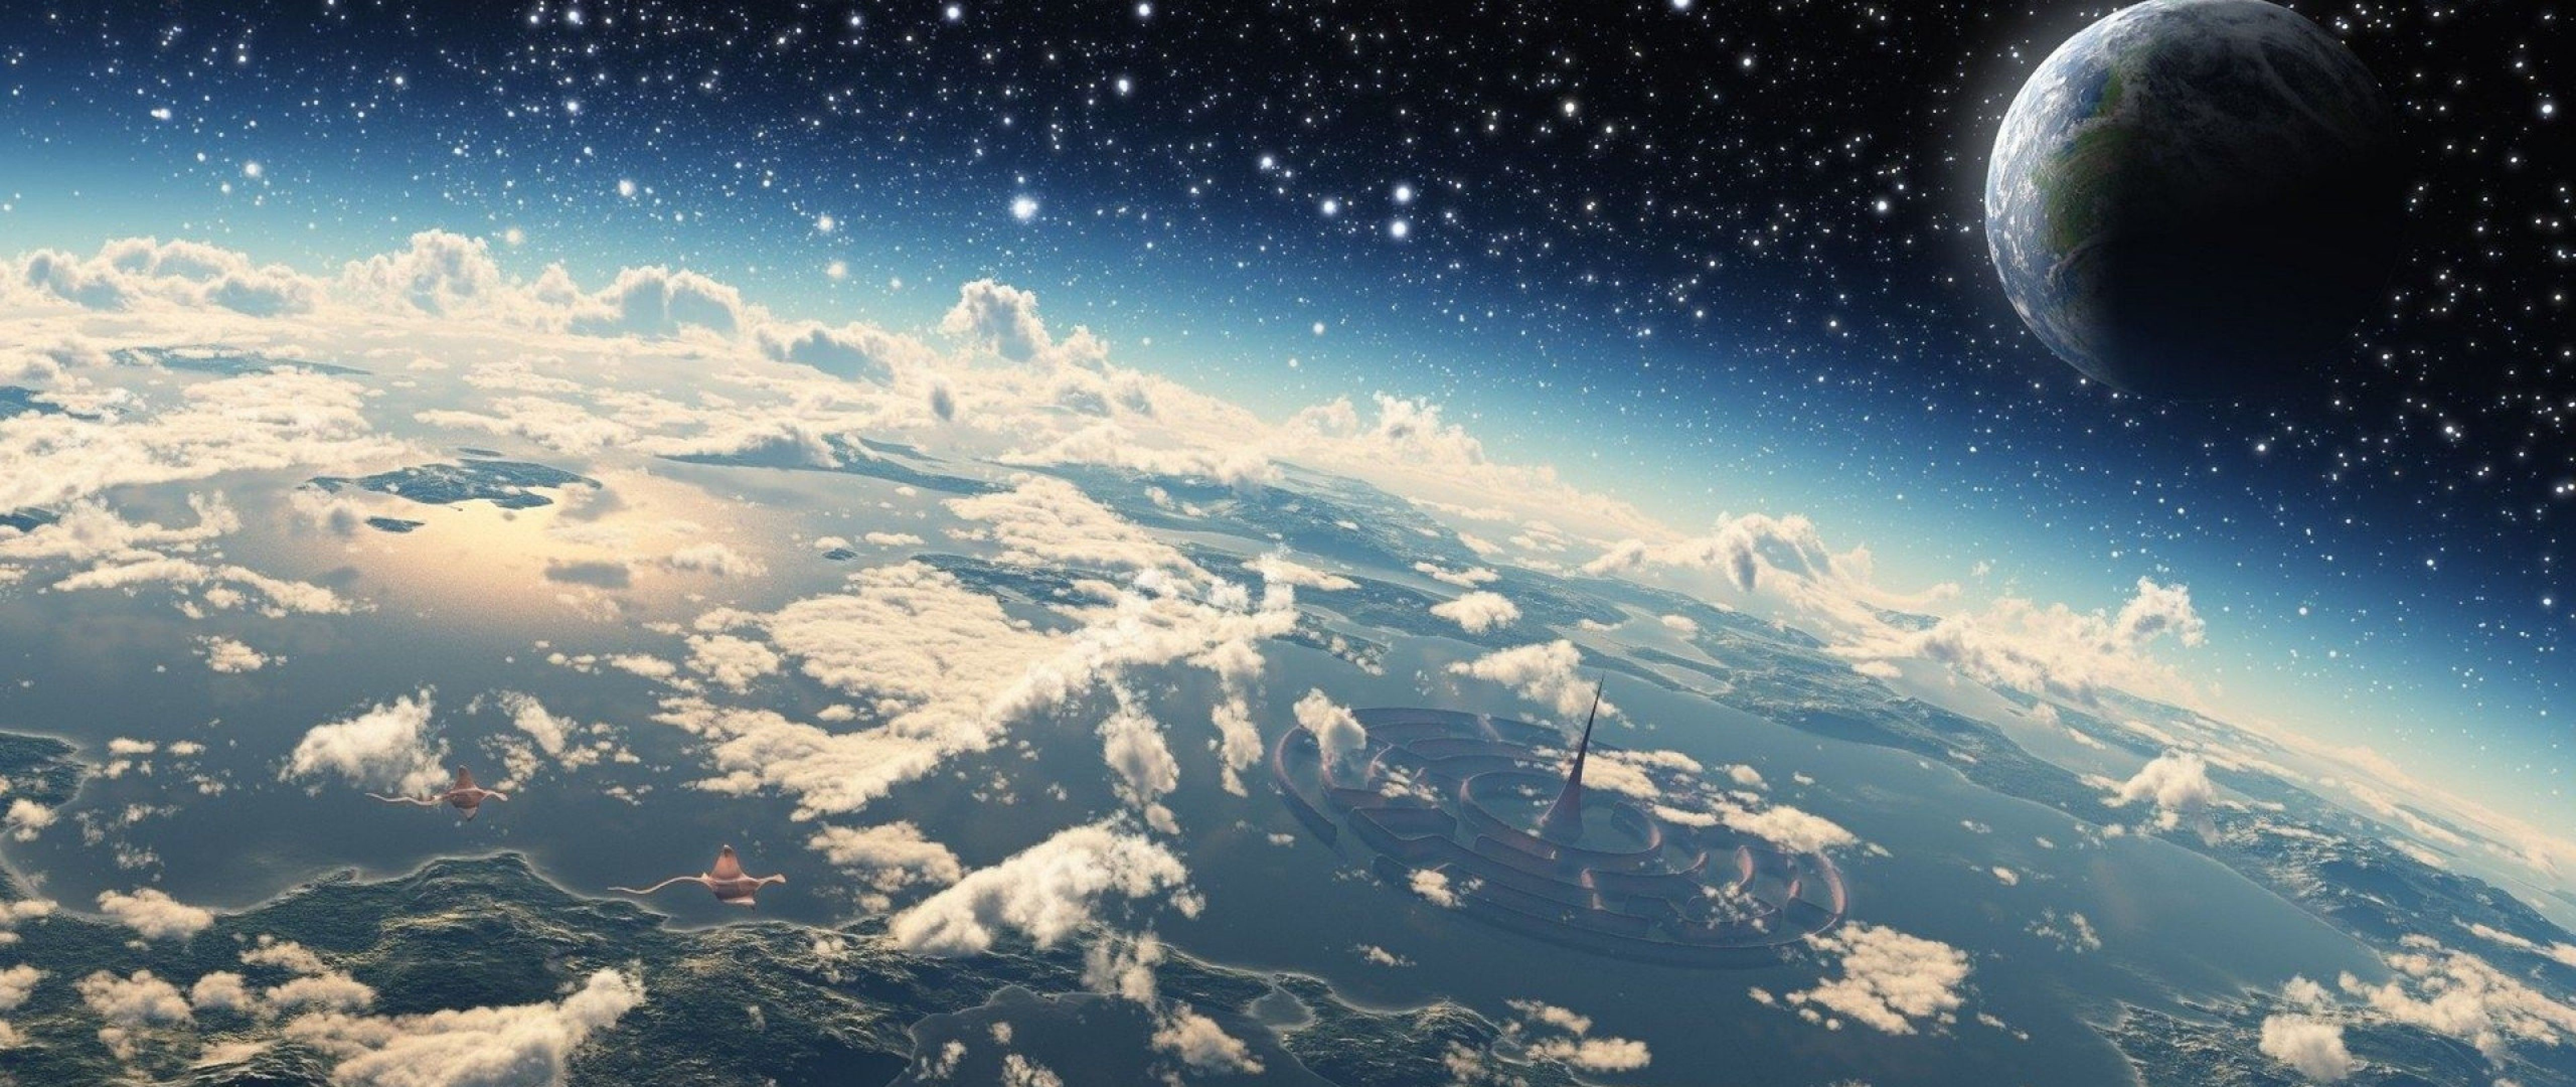 Microworld Space Ultra Wide Tv Wallpaper High Sci Fi Wallpaper Fantasy Background Space Anime